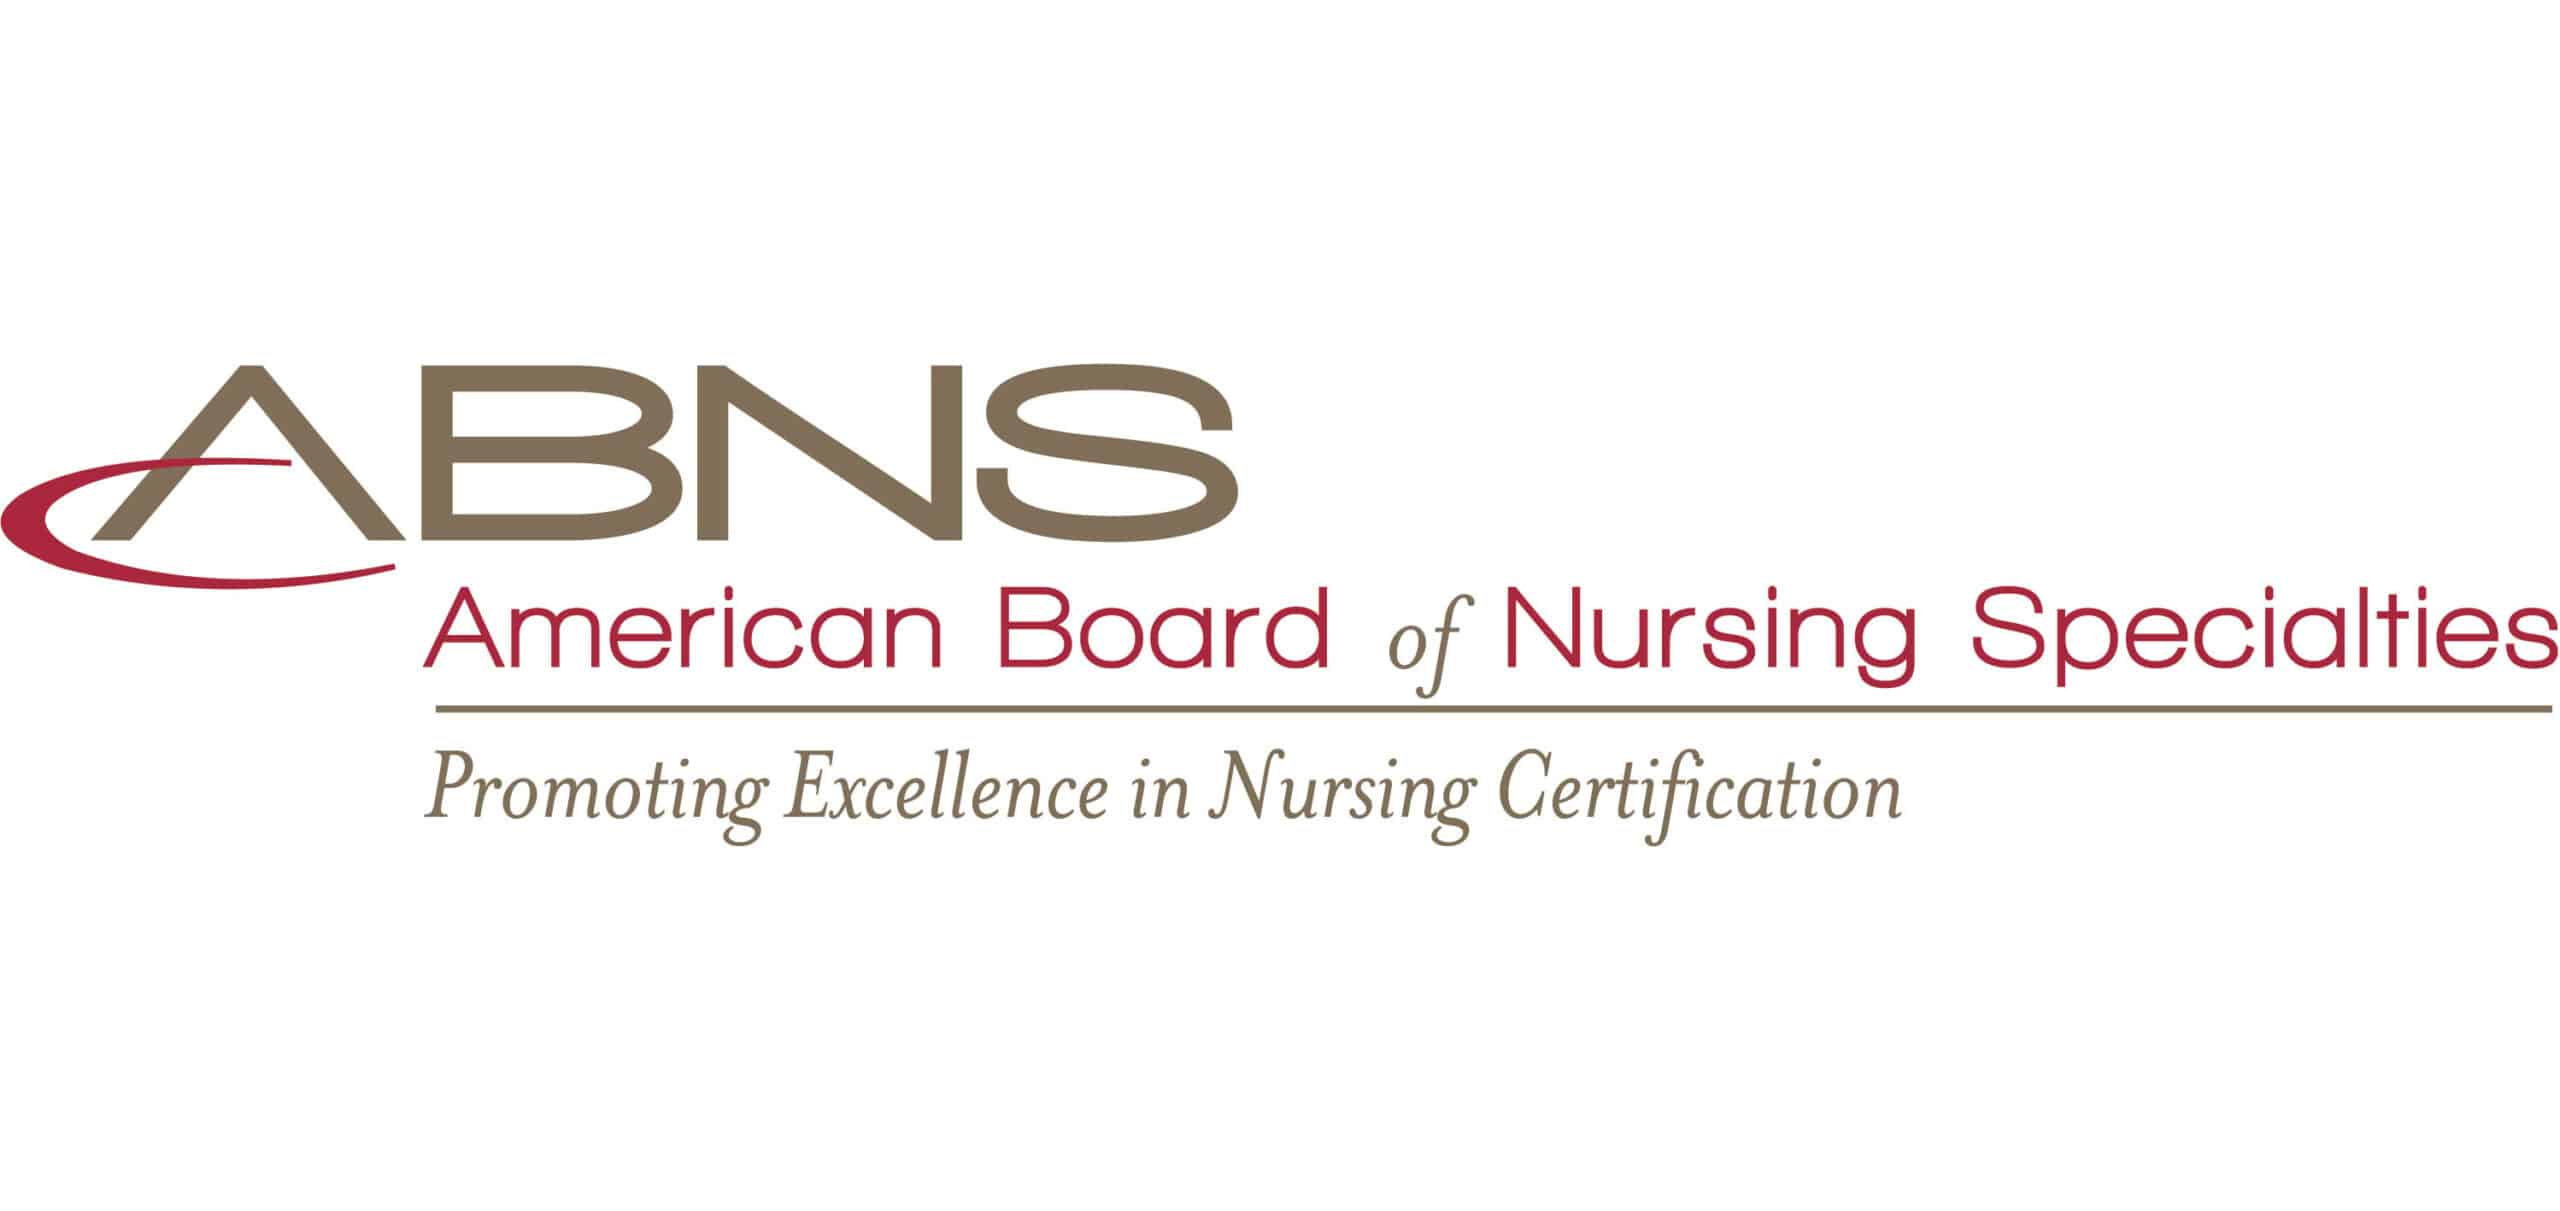 American Board of Nursing Specialties, ABNS